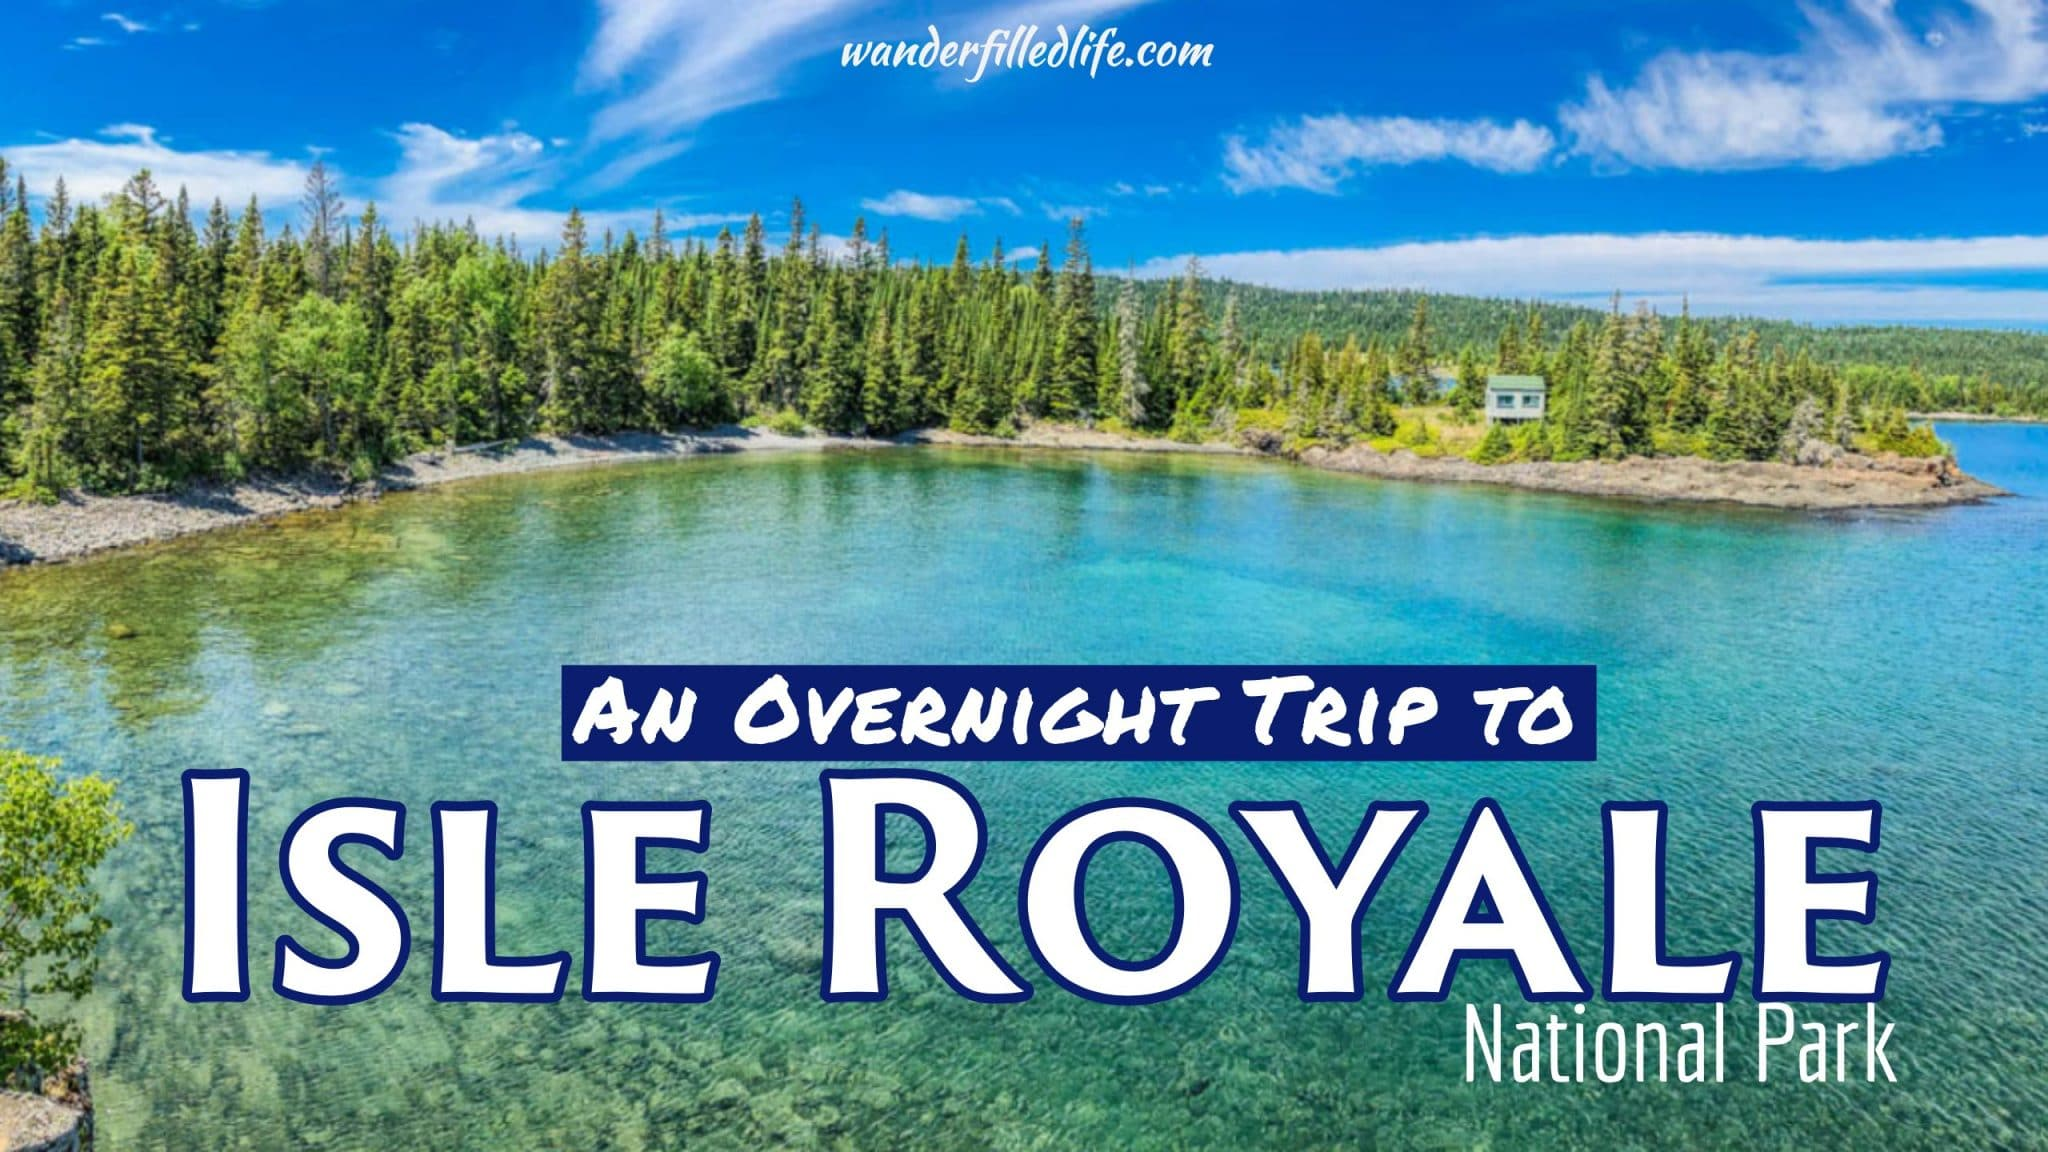 An Overnight Trip to Isle Royale National Park